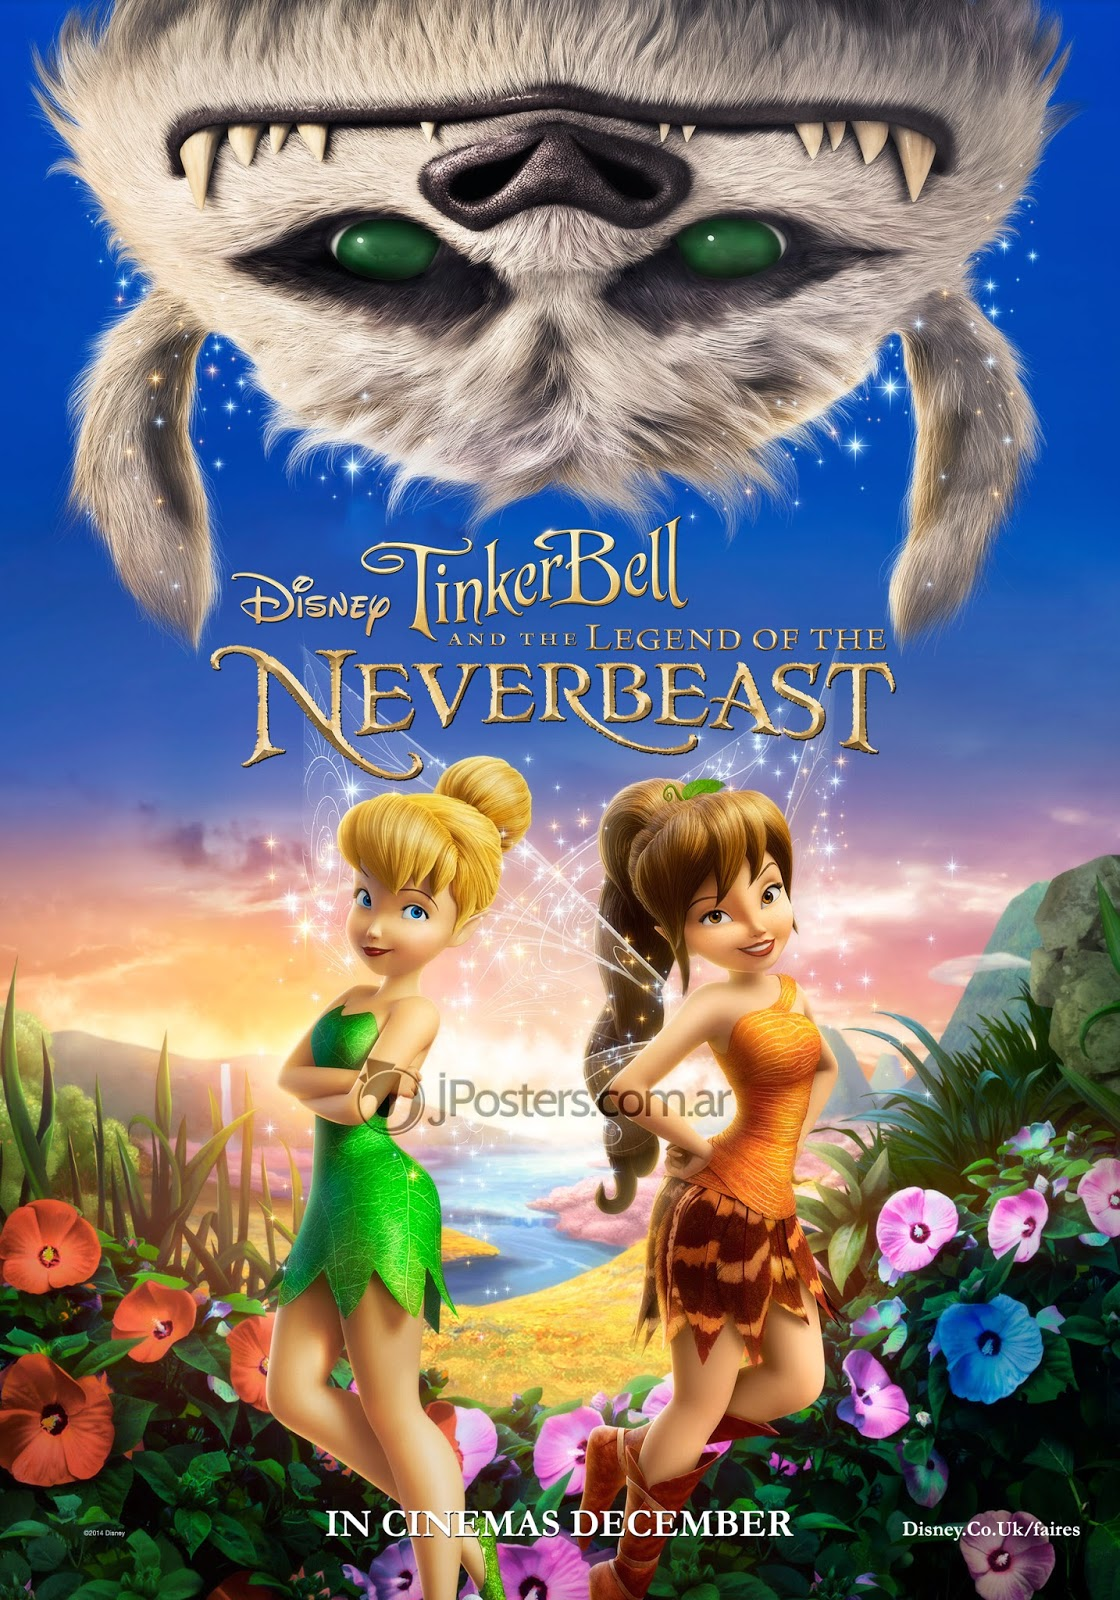 http://img2.wikia.nocookie.net/__cb20141114170350/disney/images/c/c6/Tinkerbell_And_The_Legend_Of_The_Neverbeast_Official_Poster.jpg